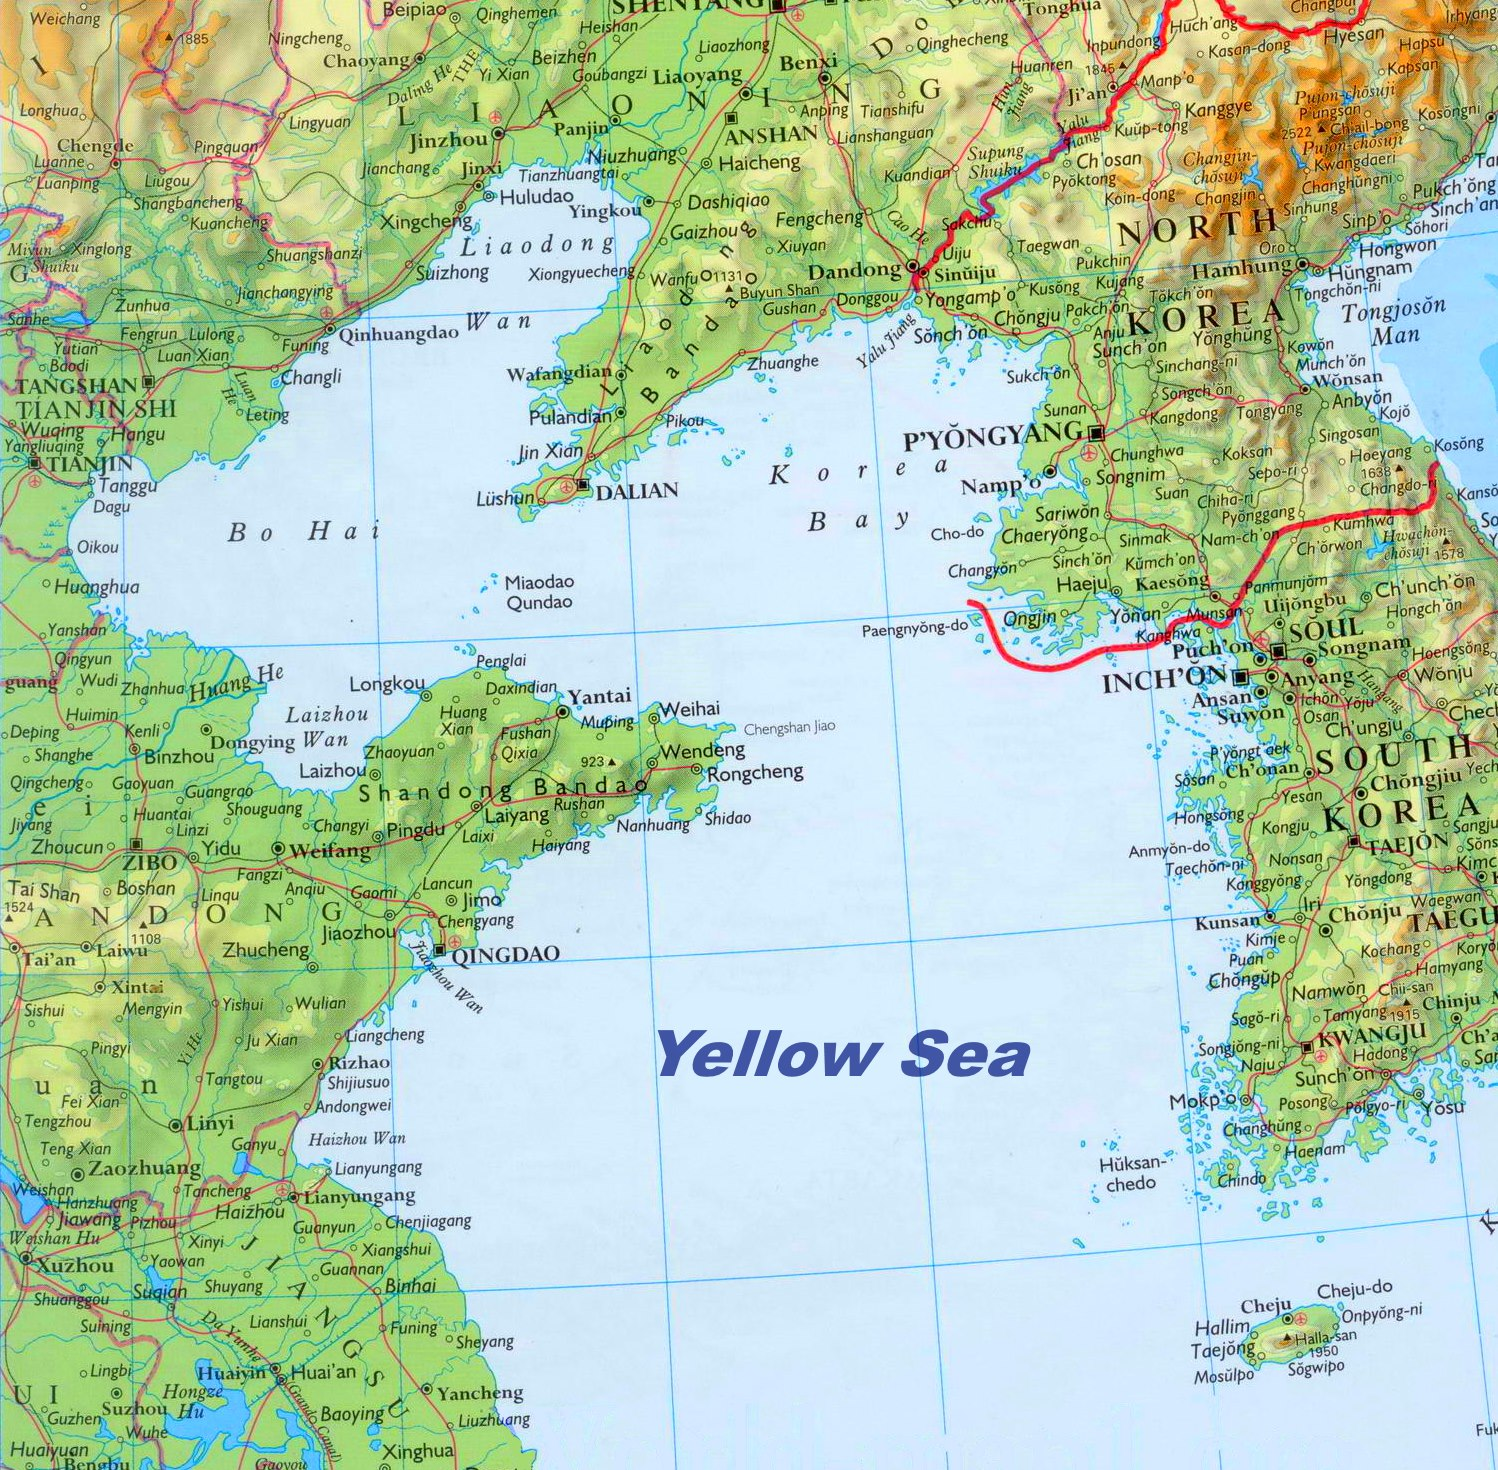 Yellow Sea Map Large detailed map of Yellow Sea